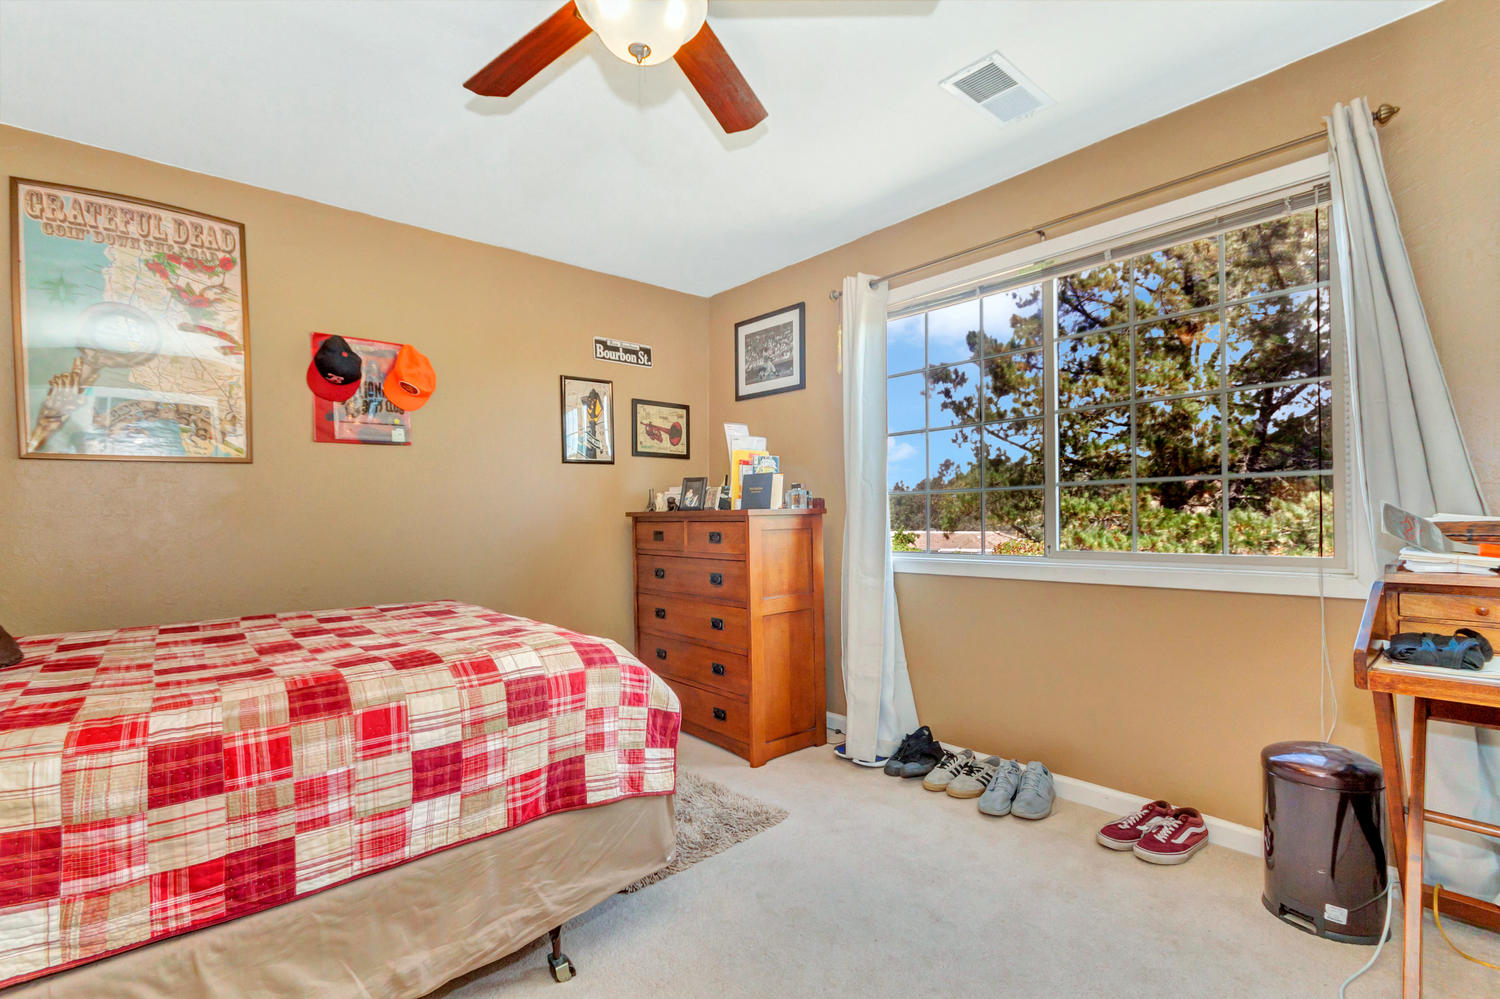 1302 W 13th St Benicia CA-large-022-20-Second Bedroom 1a-1500x1000-72dpi.jpg